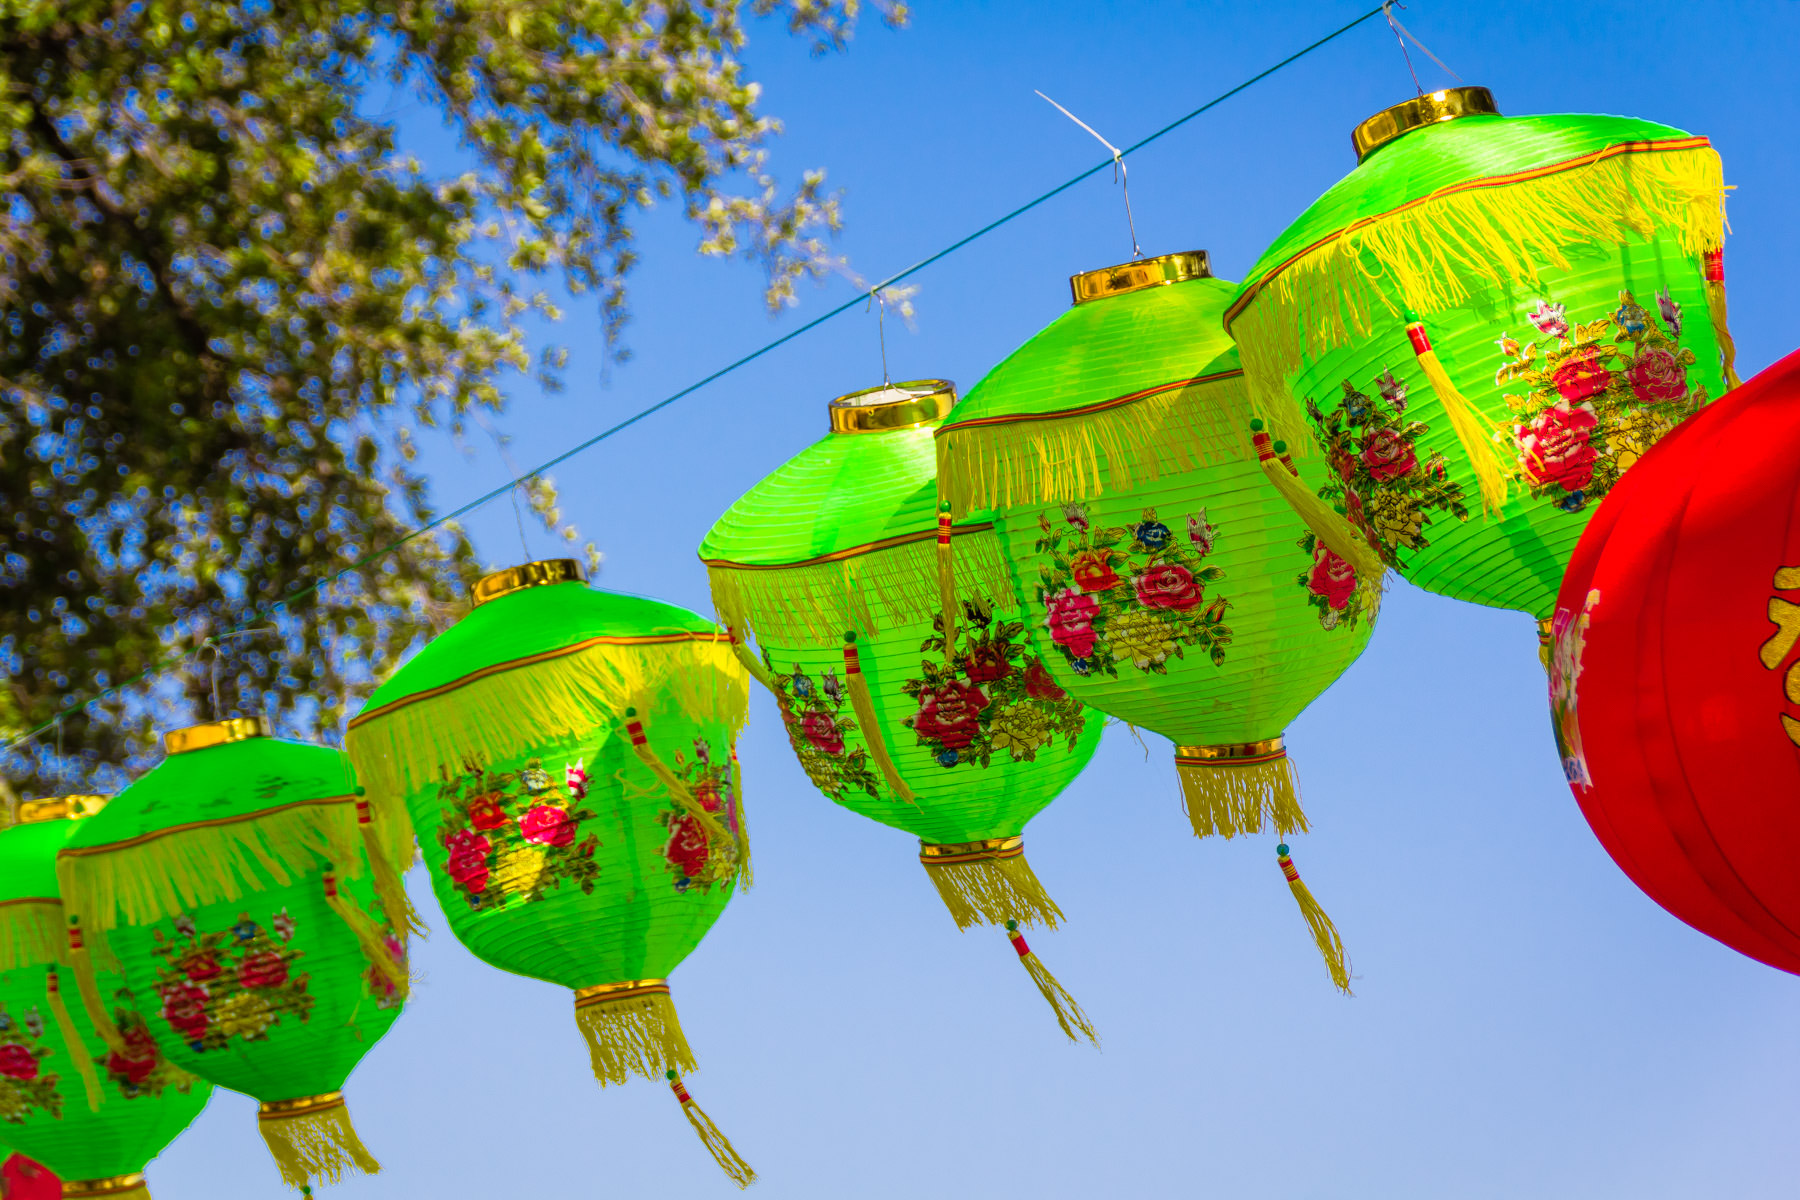 Chinese lanterns at the DFW Dragon Boat Festival, Las Colinas, Irving, Texas.